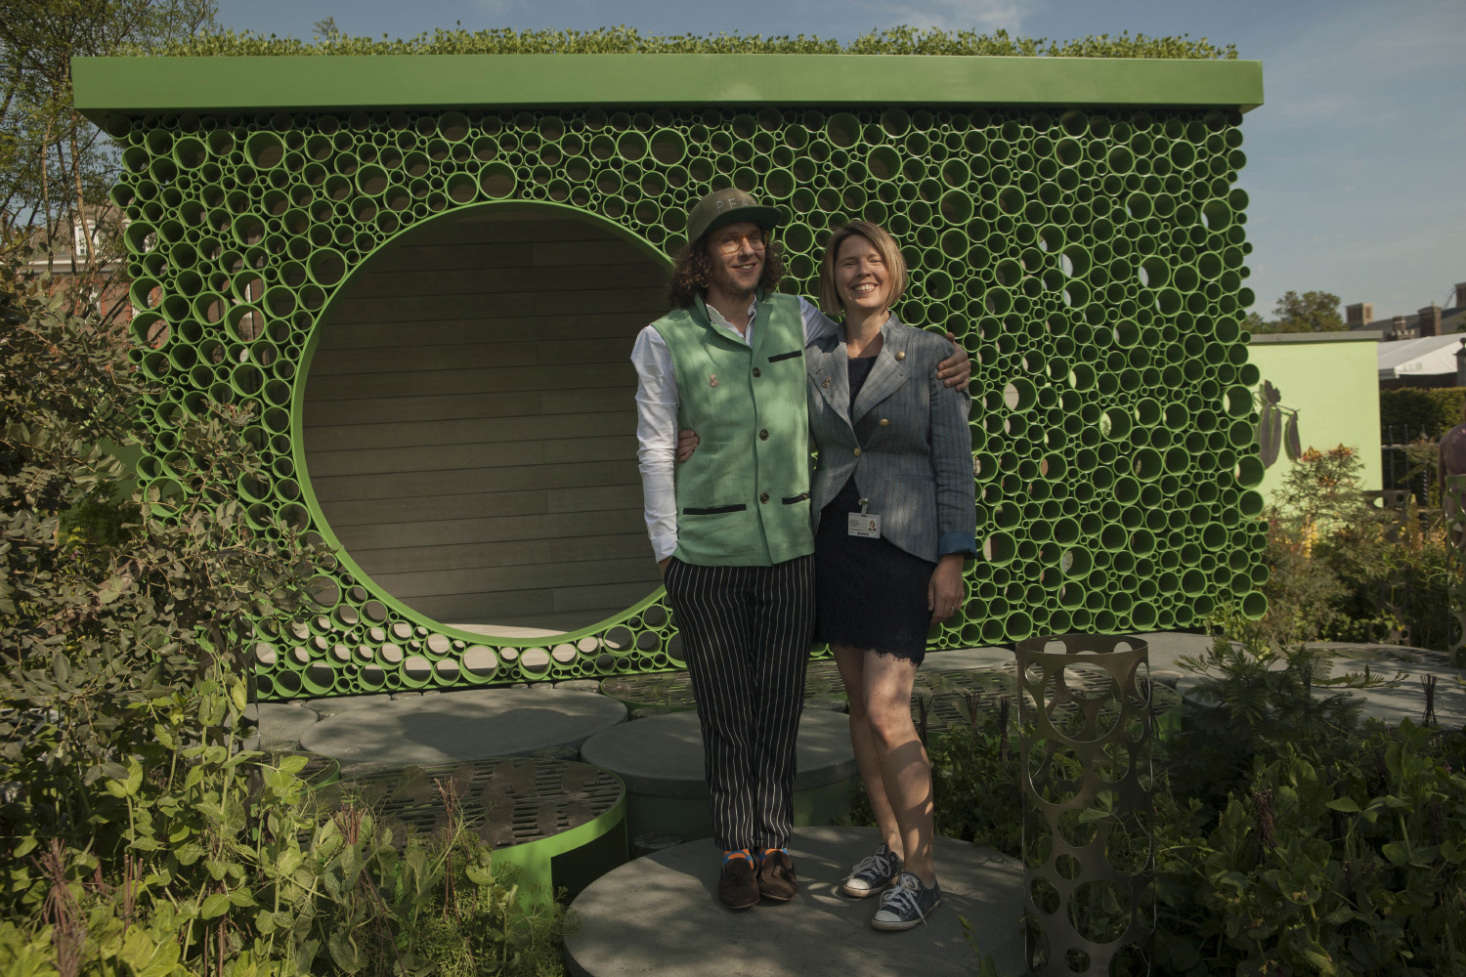 Pea fancier and Seedlip founder Ben Branson, with garden designer Catherine Macdonald, Ph.D.